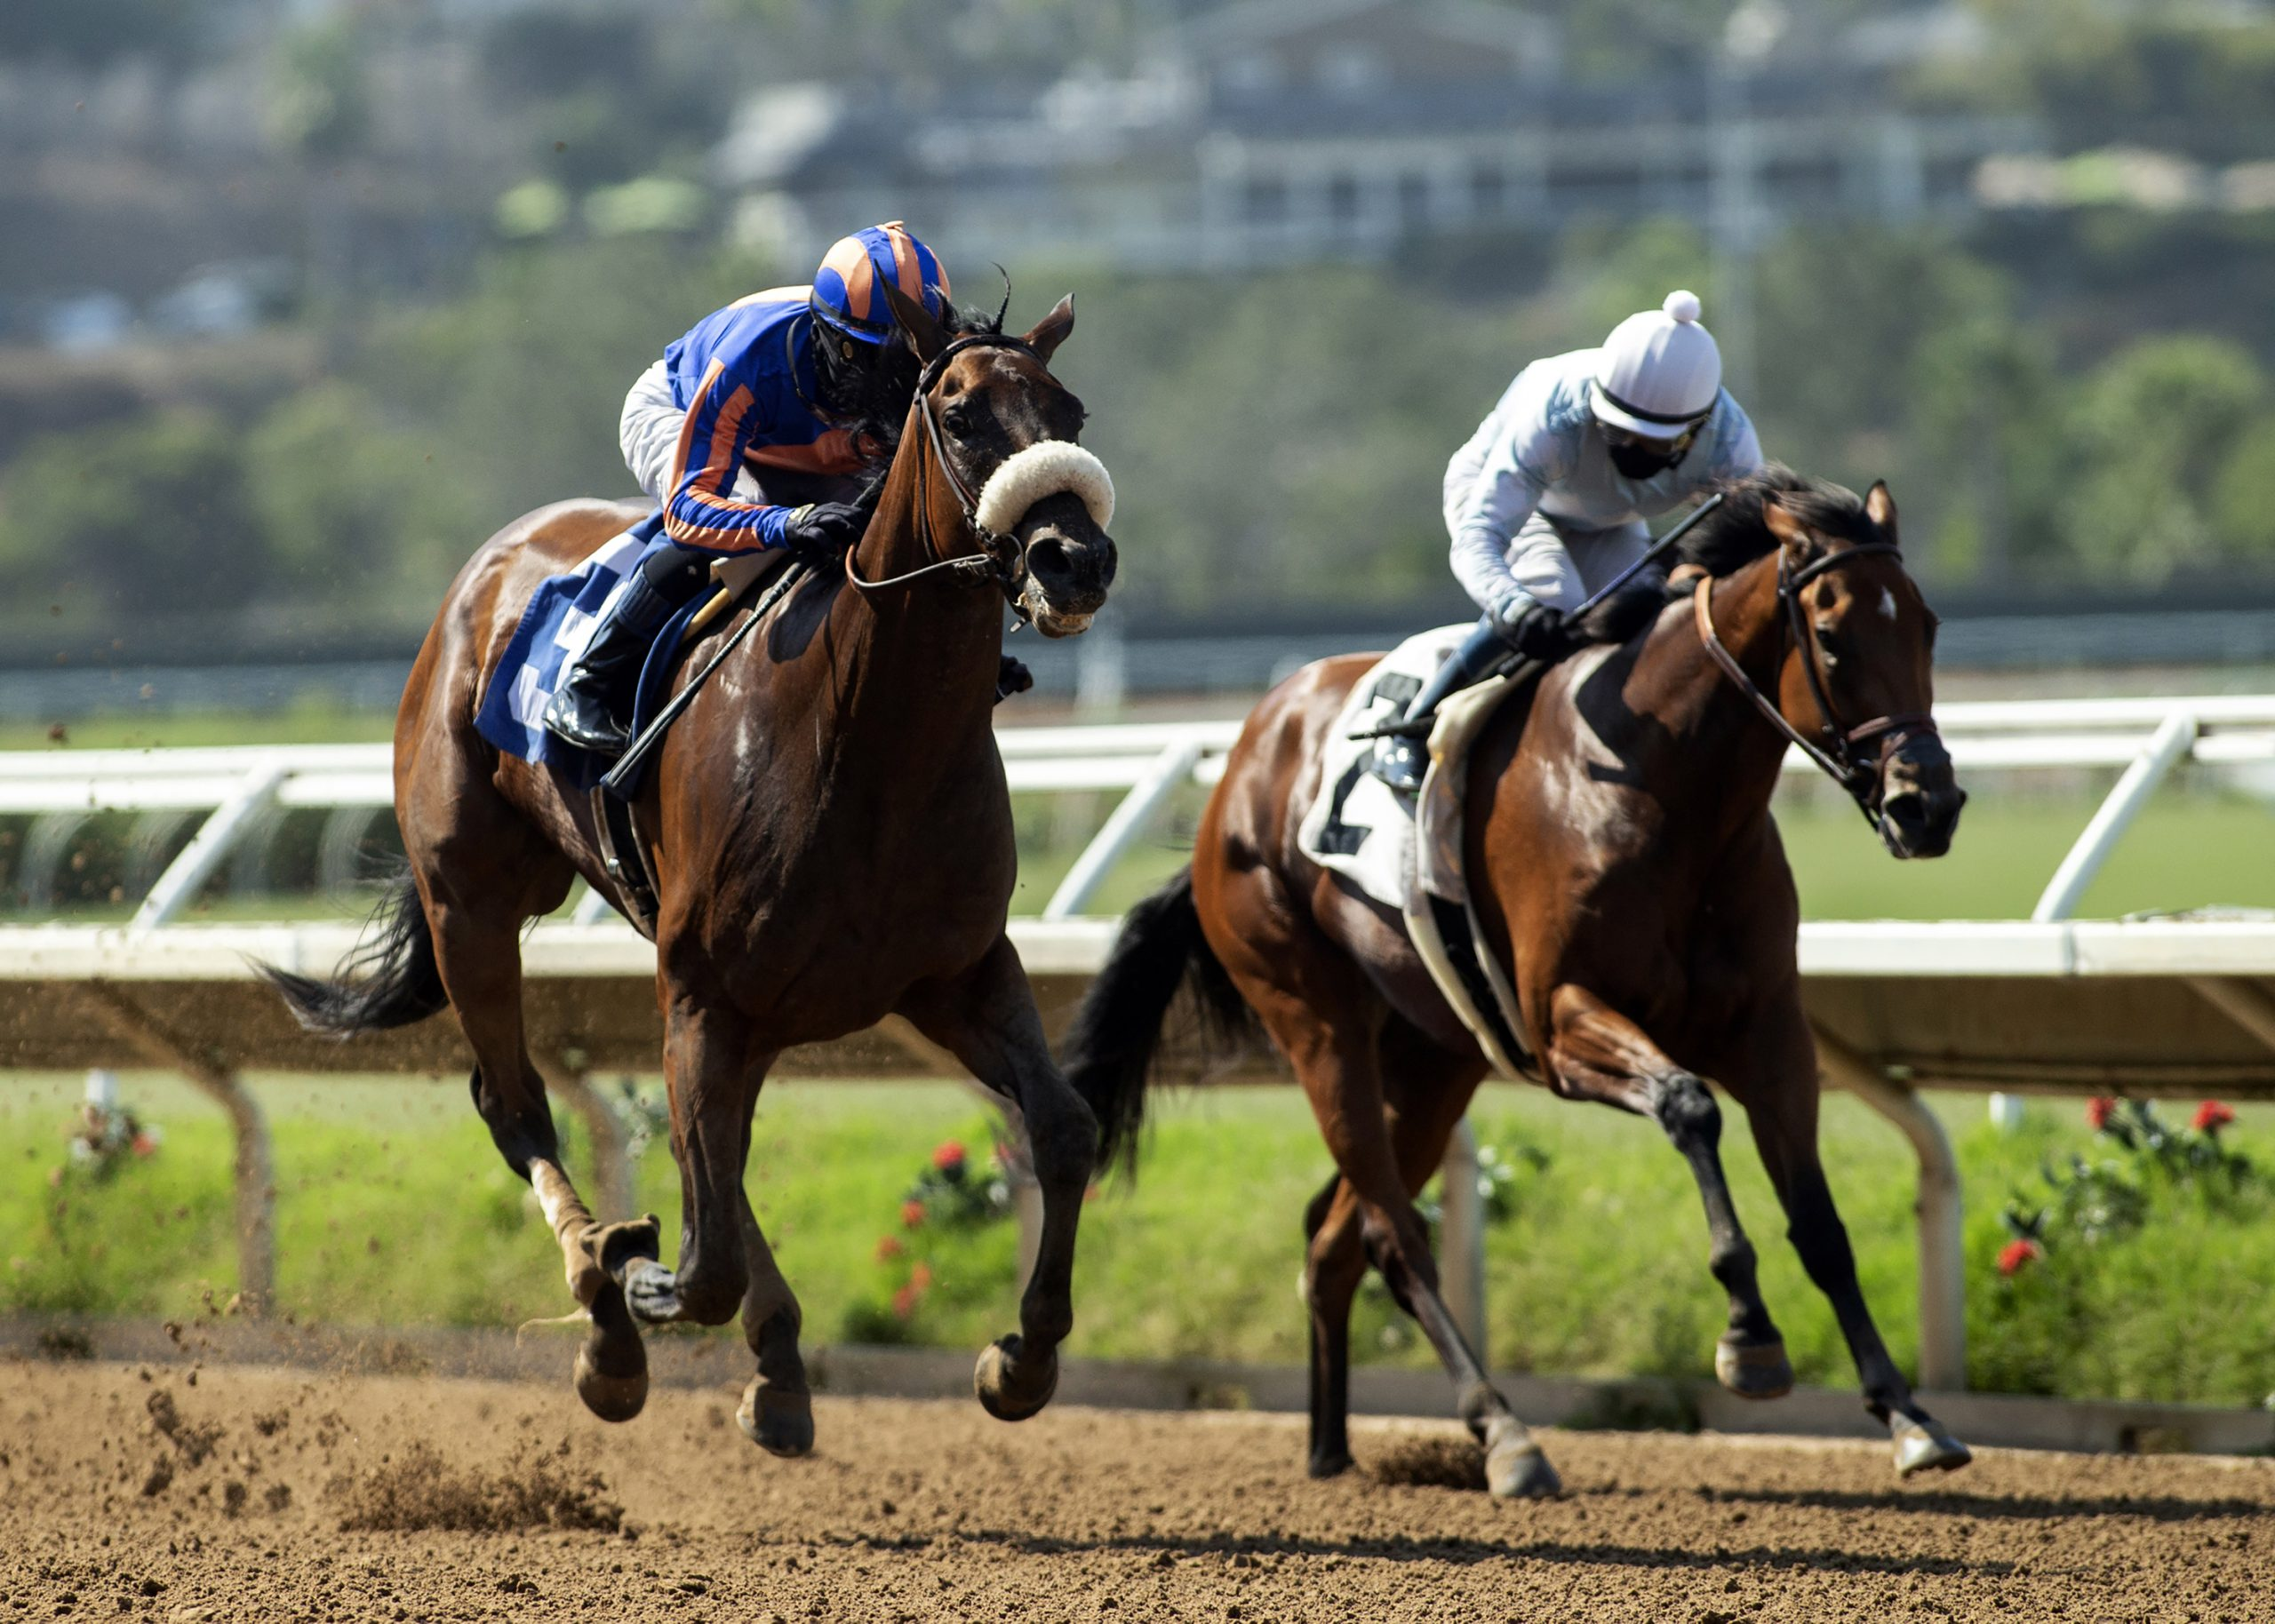 Mainers won't be able to bet on next weekend's Kentucky Derby